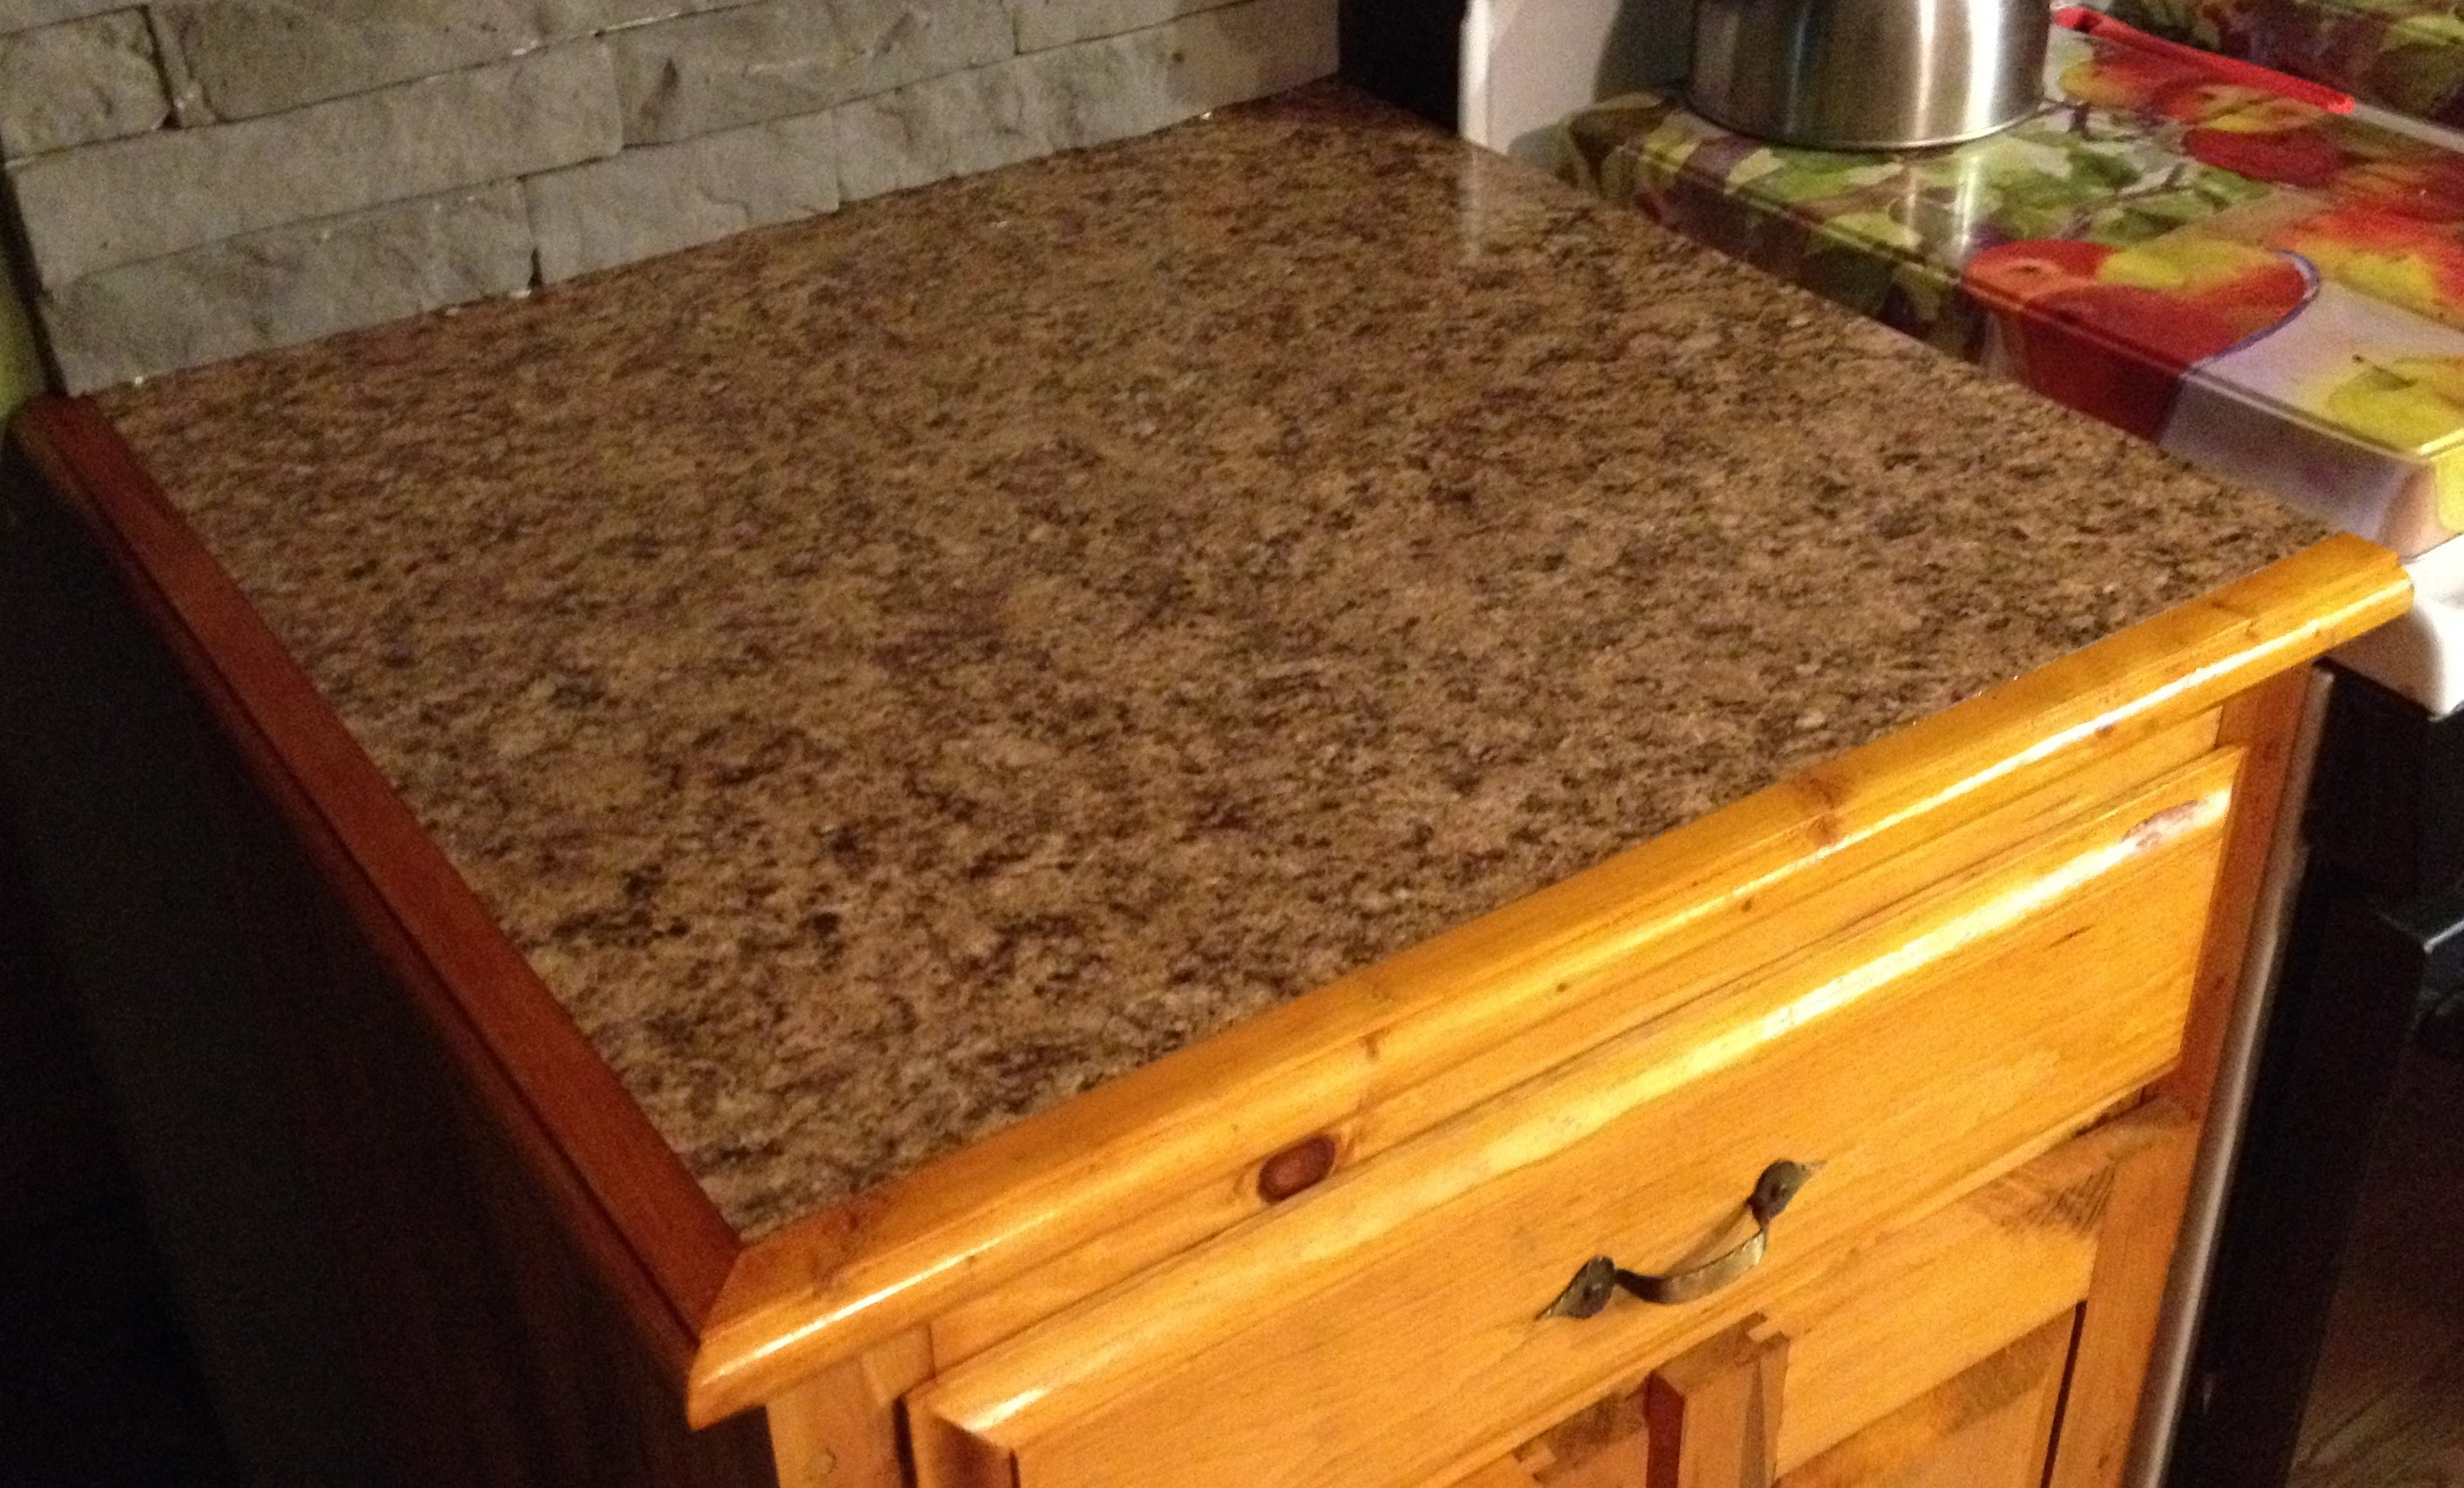 20 Ideas for Installing a Wooden Countertop at Your Home Patterns ...